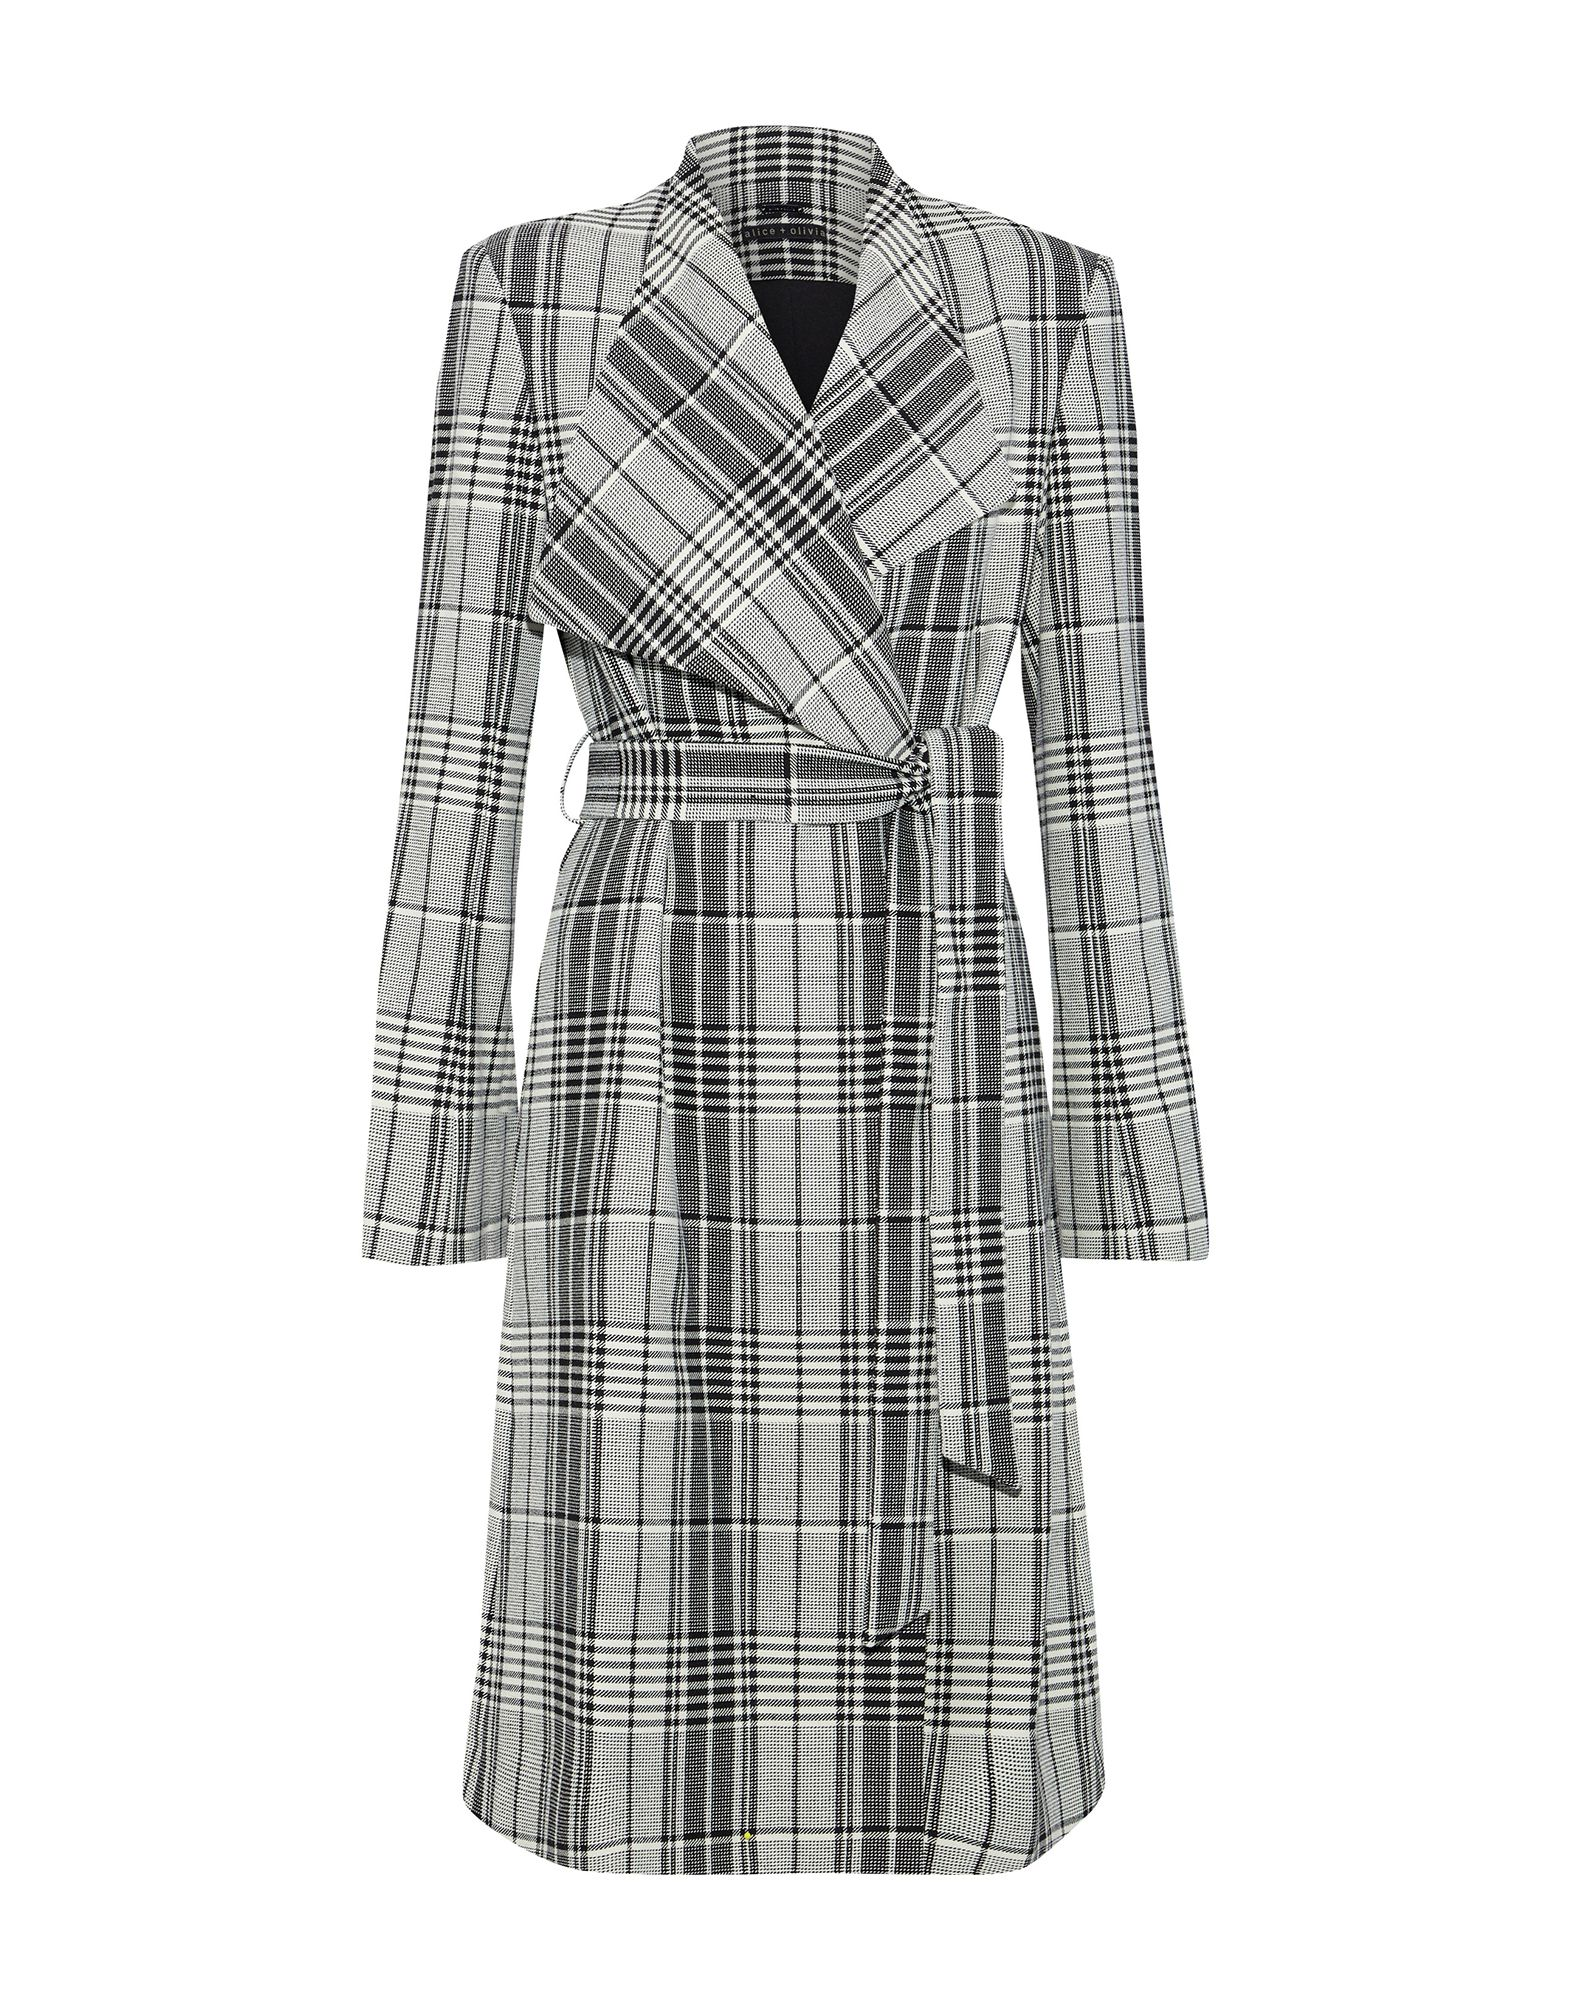 ALICE + OLIVIA Overcoats. flannel, no appliqués, glen plaid, single-breasted, lapel collar, multipockets, long sleeves, fully lined, belted waistline, stretch, large sized. 62% Polyester, 26% Viscose, 9% Wool, 3% Elastane